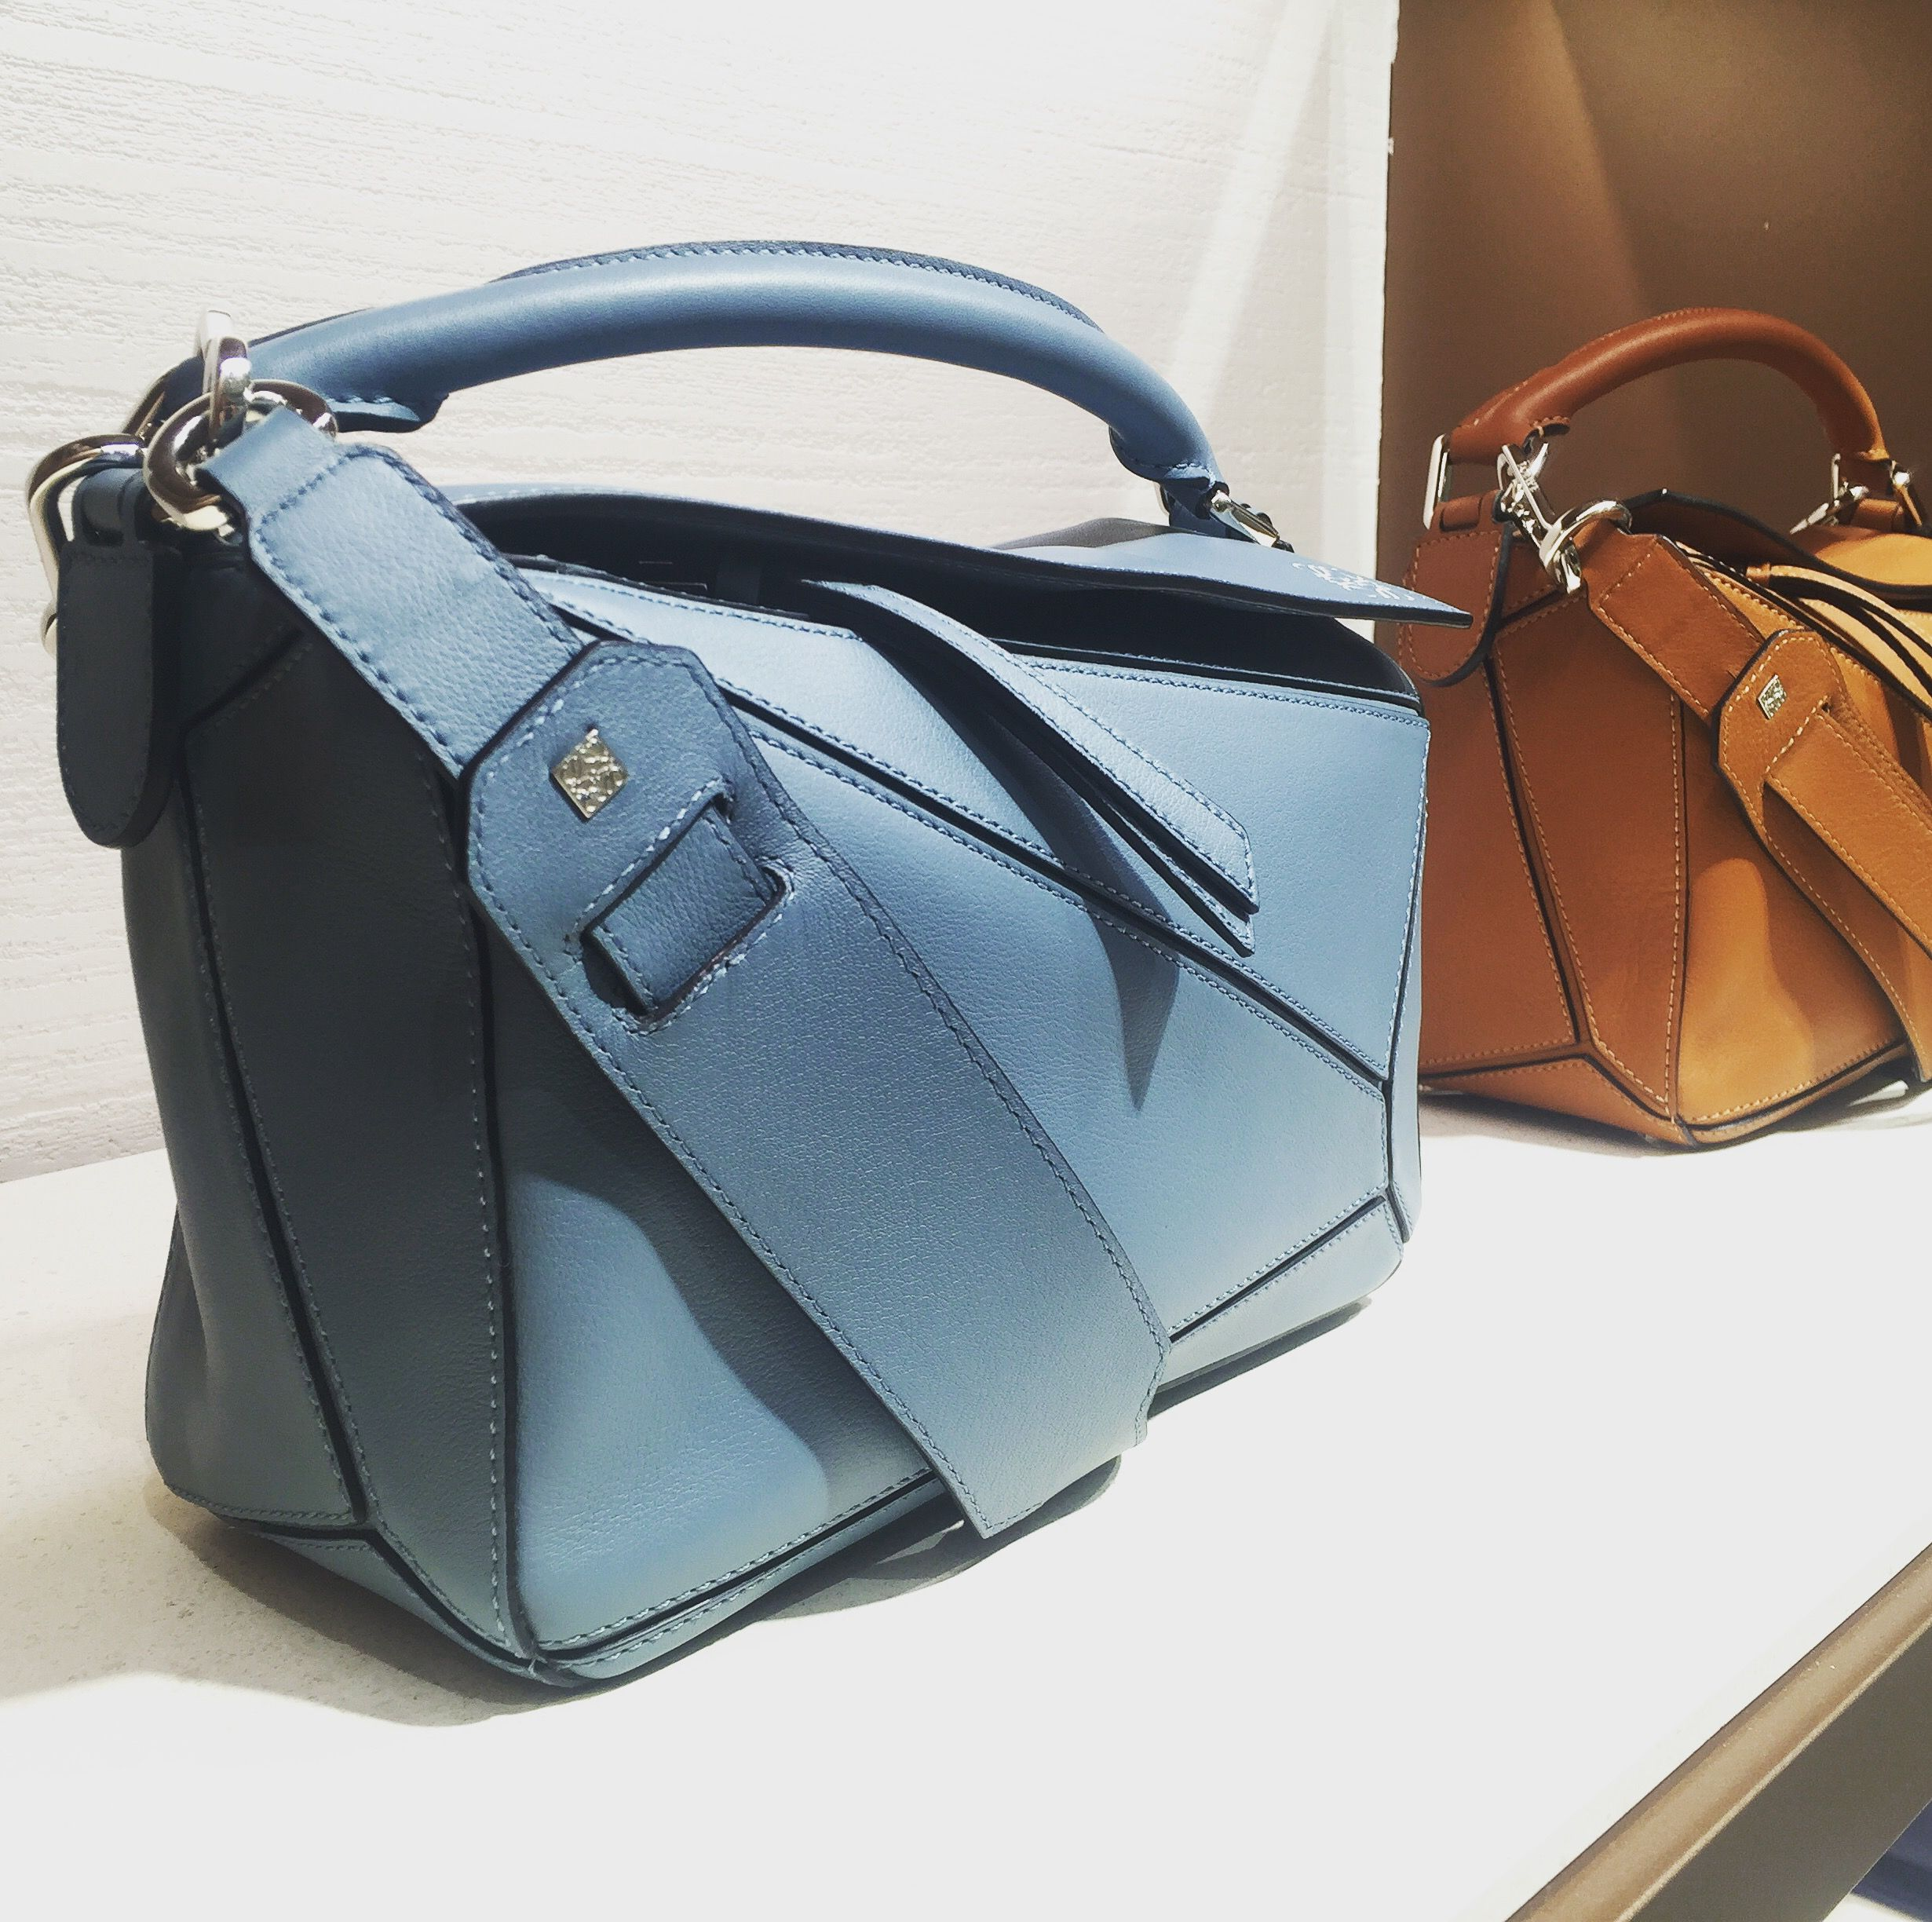 1e628eb854dc Loewe Puzzle Bag in Light Blue Leather with Silver Hardware